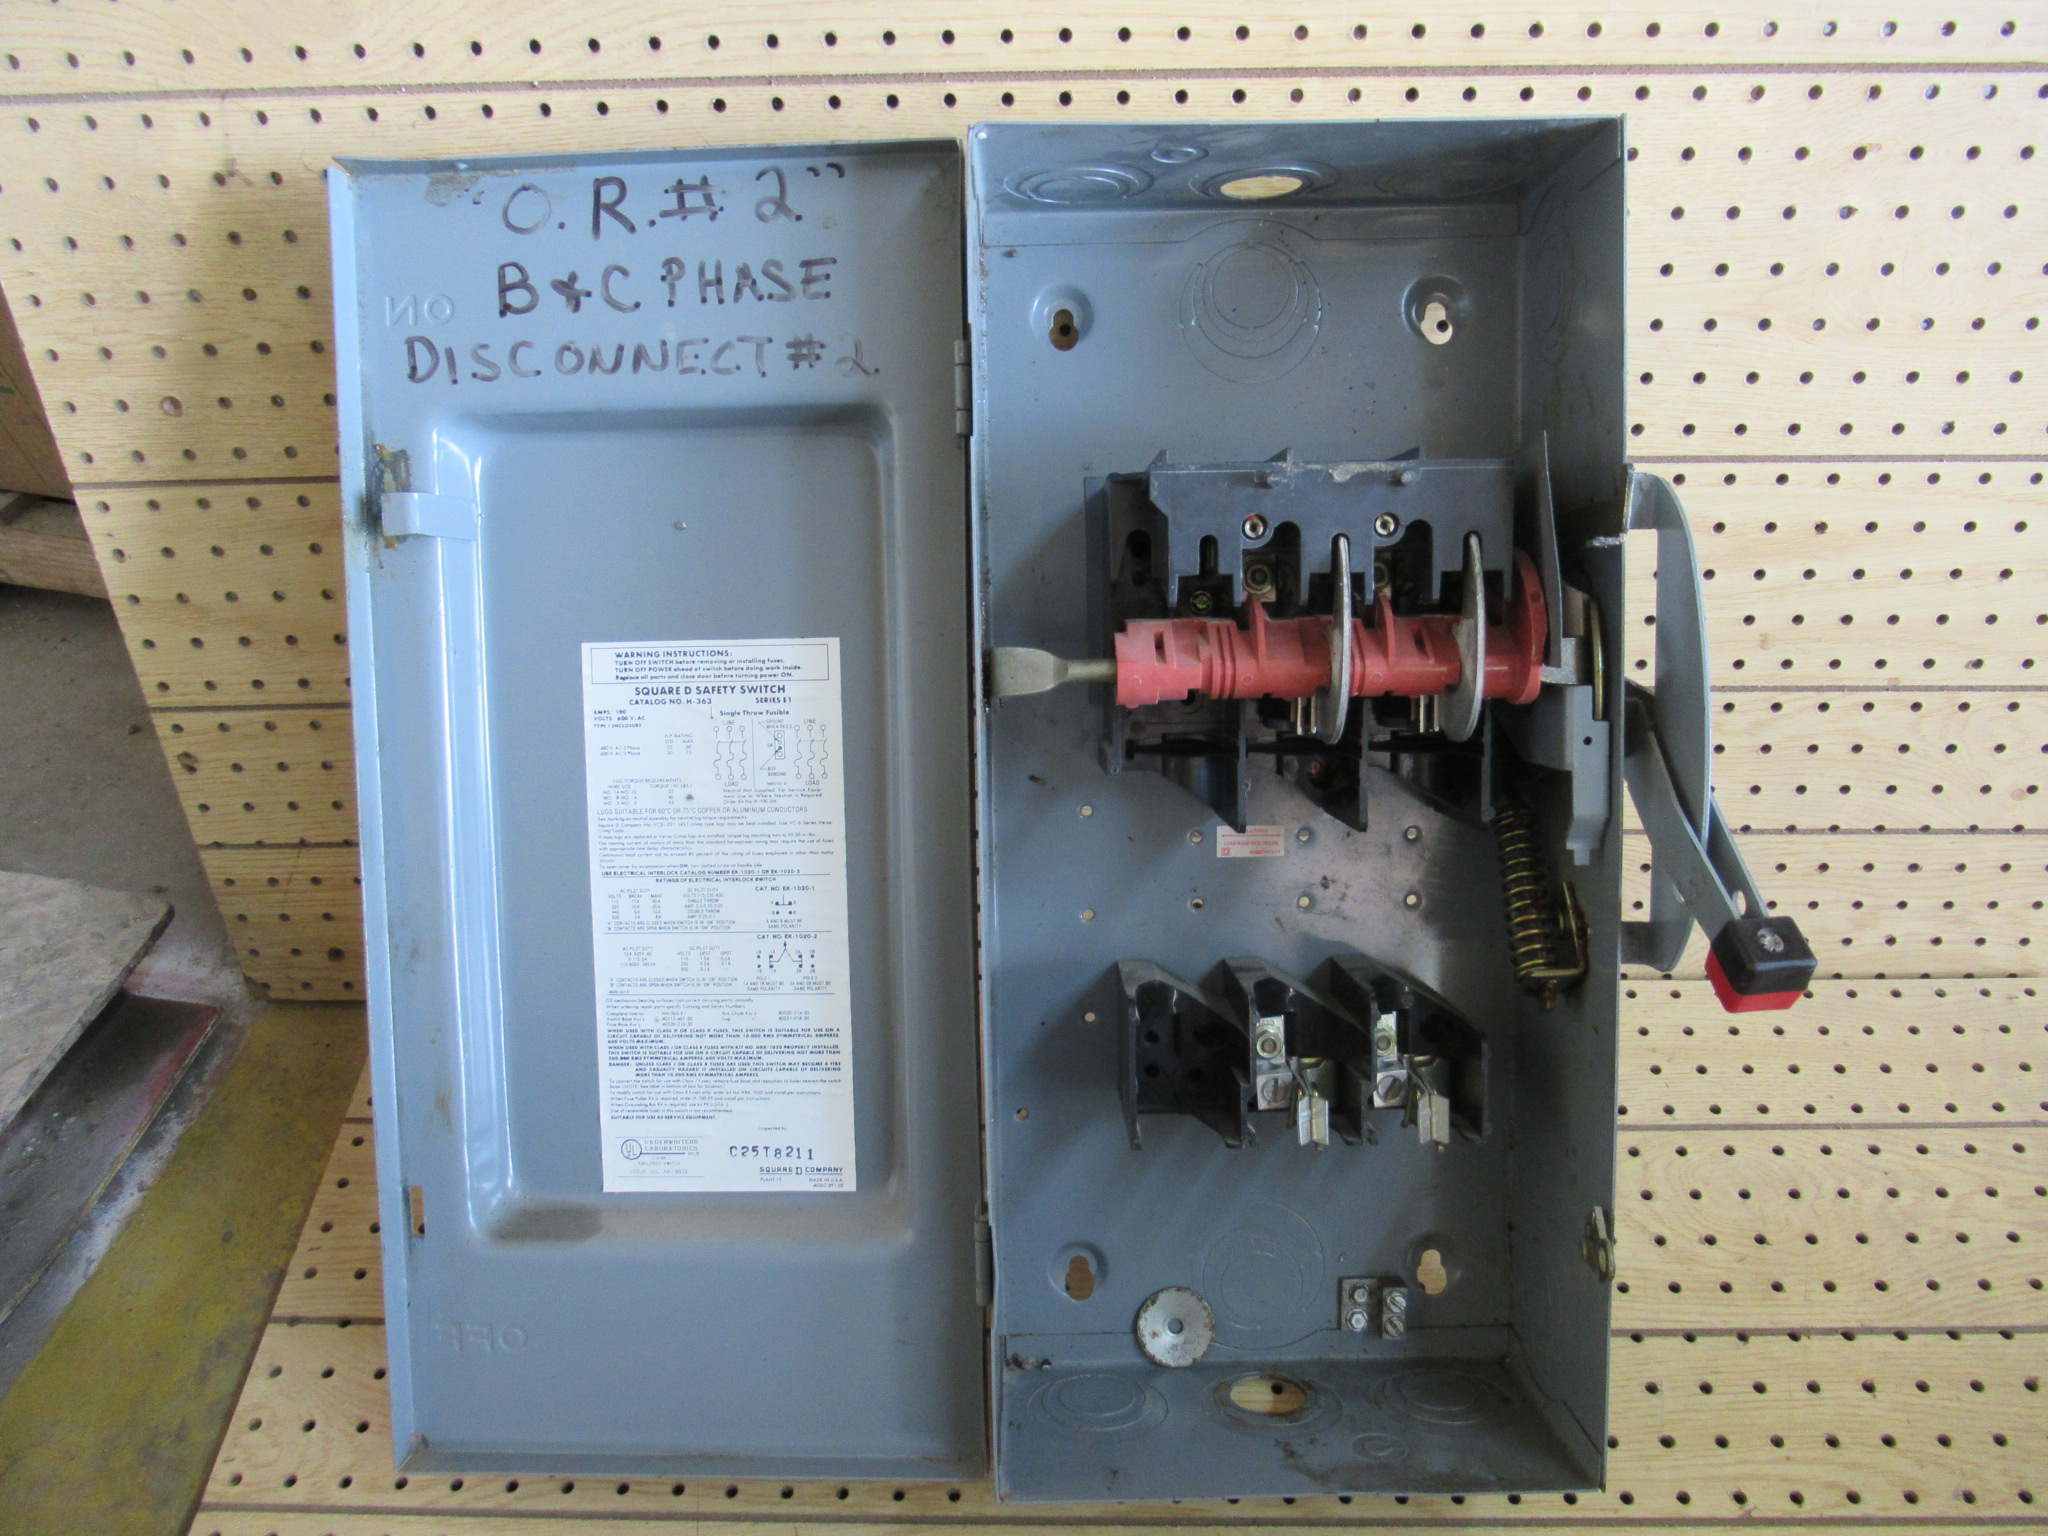 100 Amp Disconnect >> 100 Amp 3 Phase 600 Vac Square D Fusible Safety Switch Disconnect